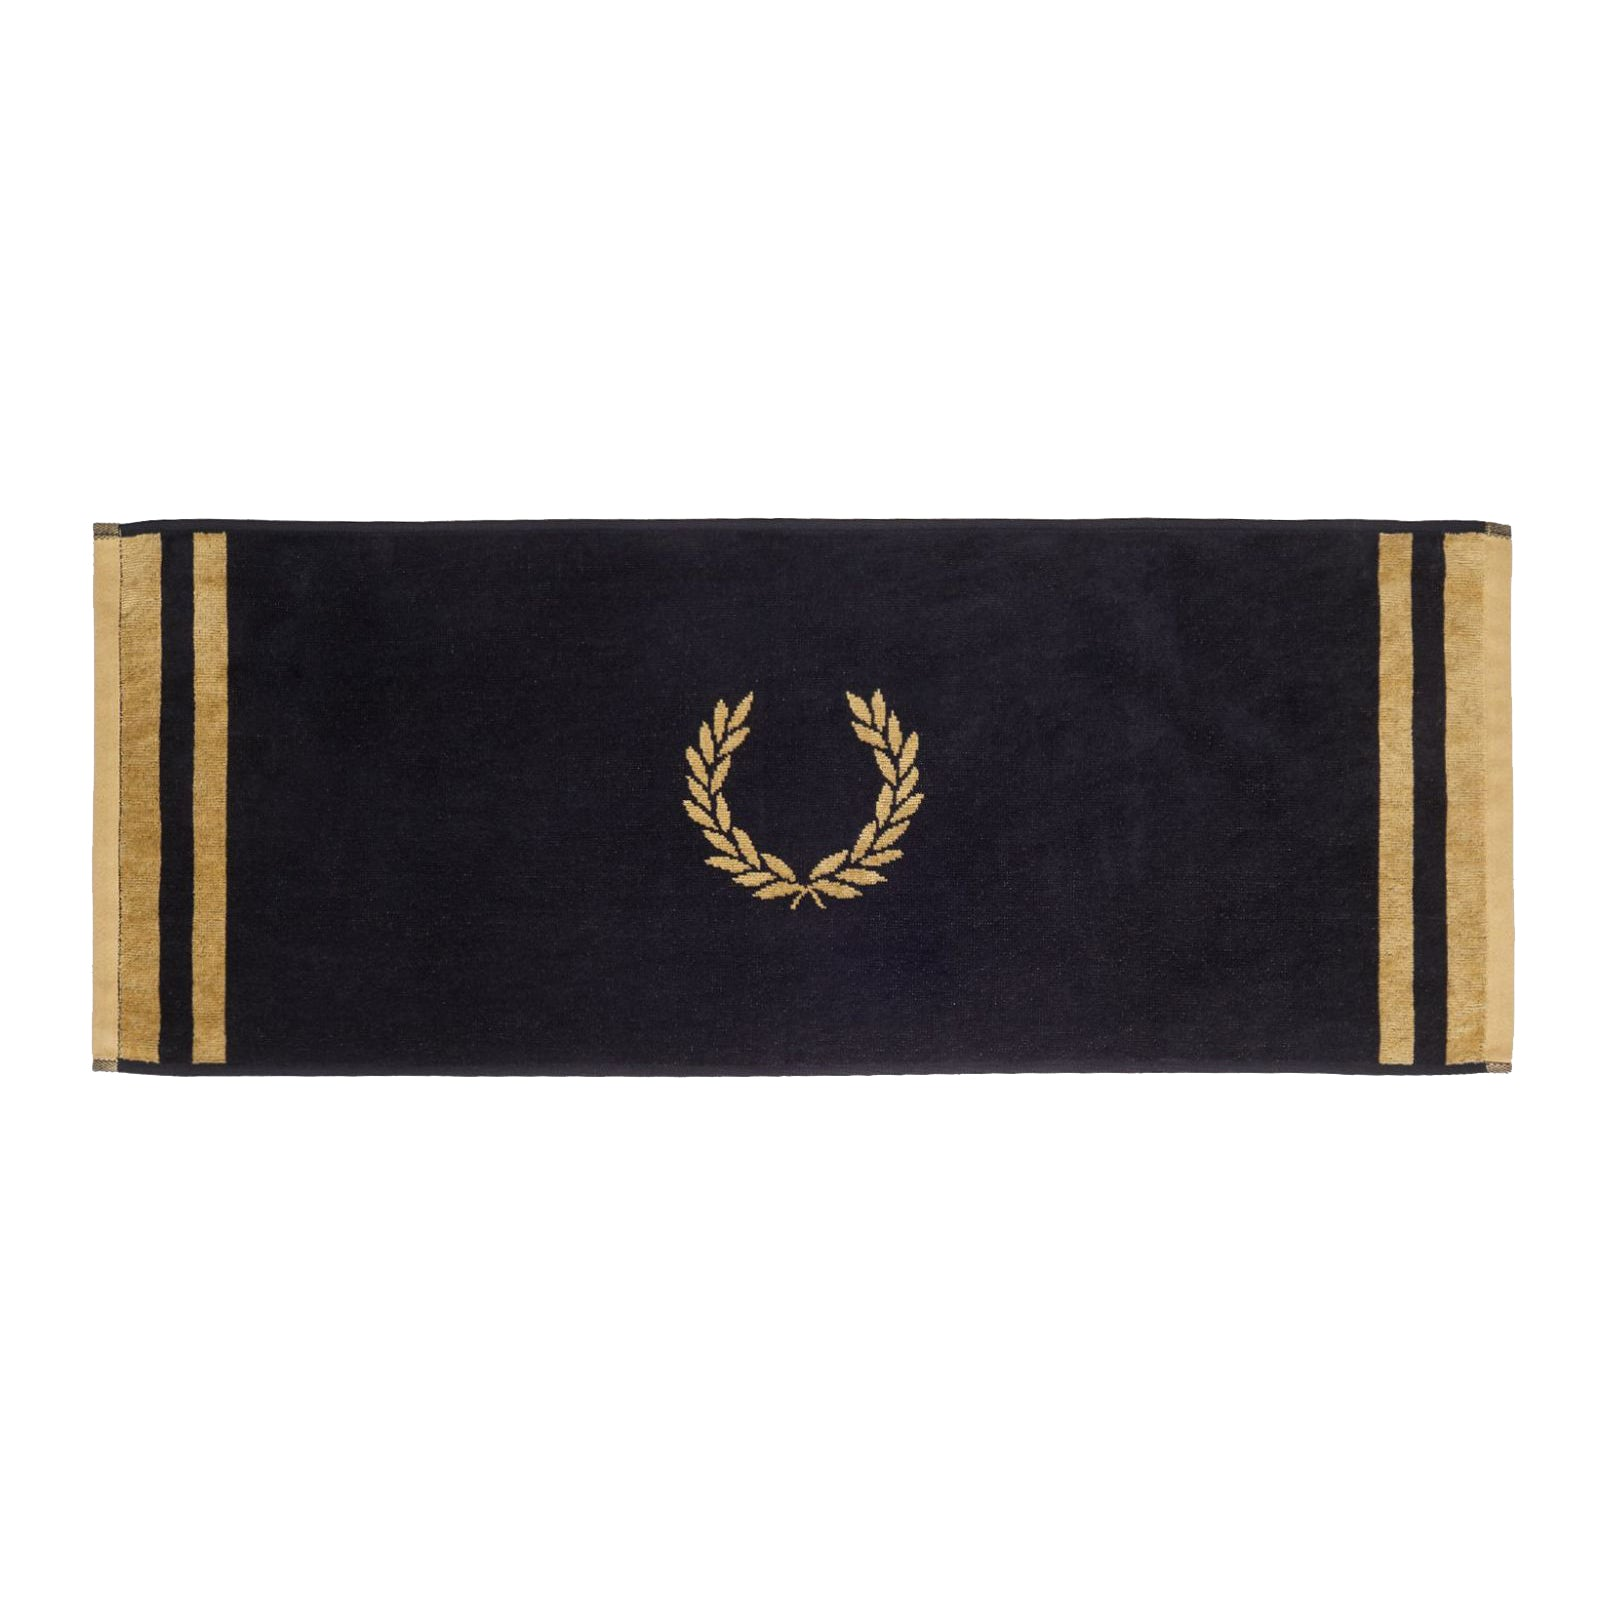 Fred Perry Handtuch, Black/Champagne